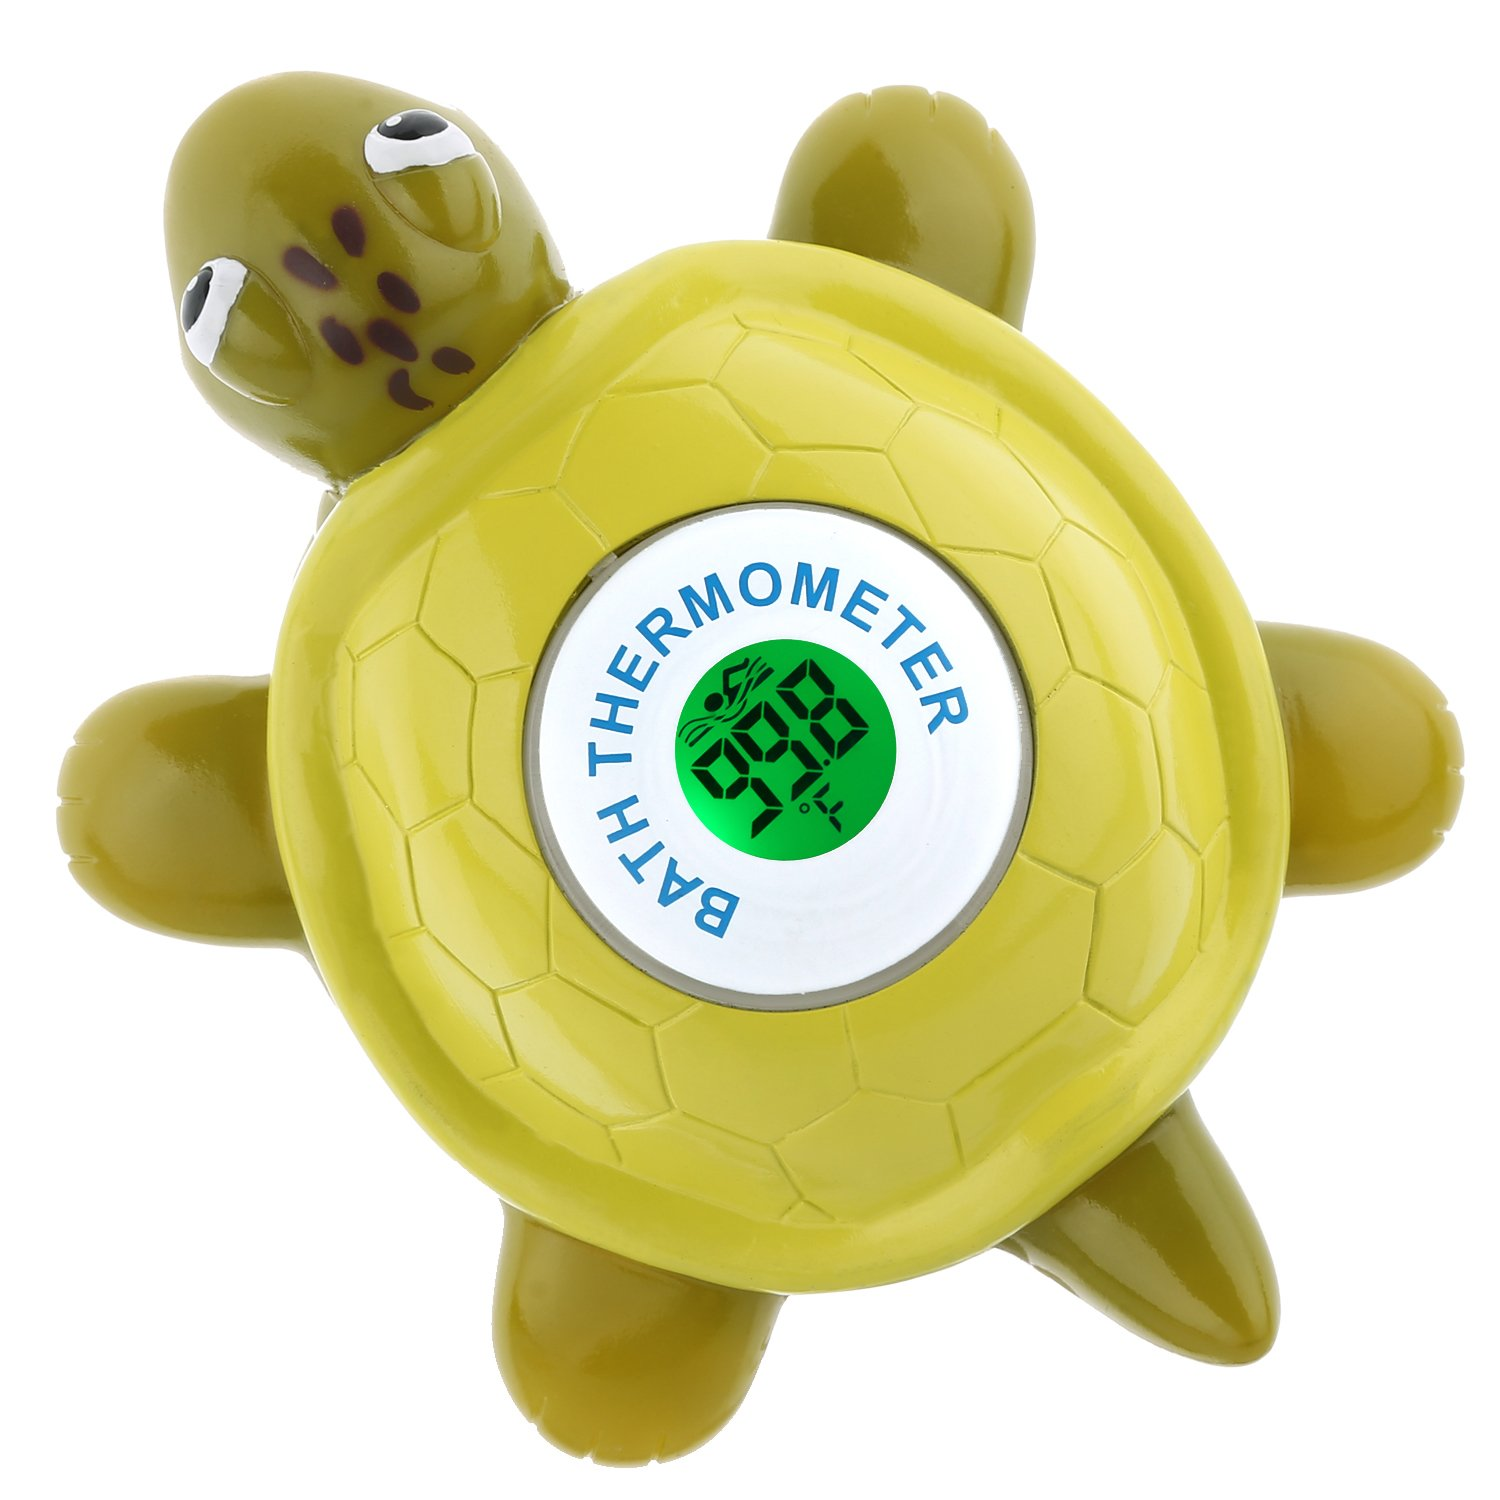 Baby Bath Thermometer, OUREIDA Floating Tortoise Bath Toy Bathtub Water Temperature Thermometer for Baby Bathing Safety (Tortoise)